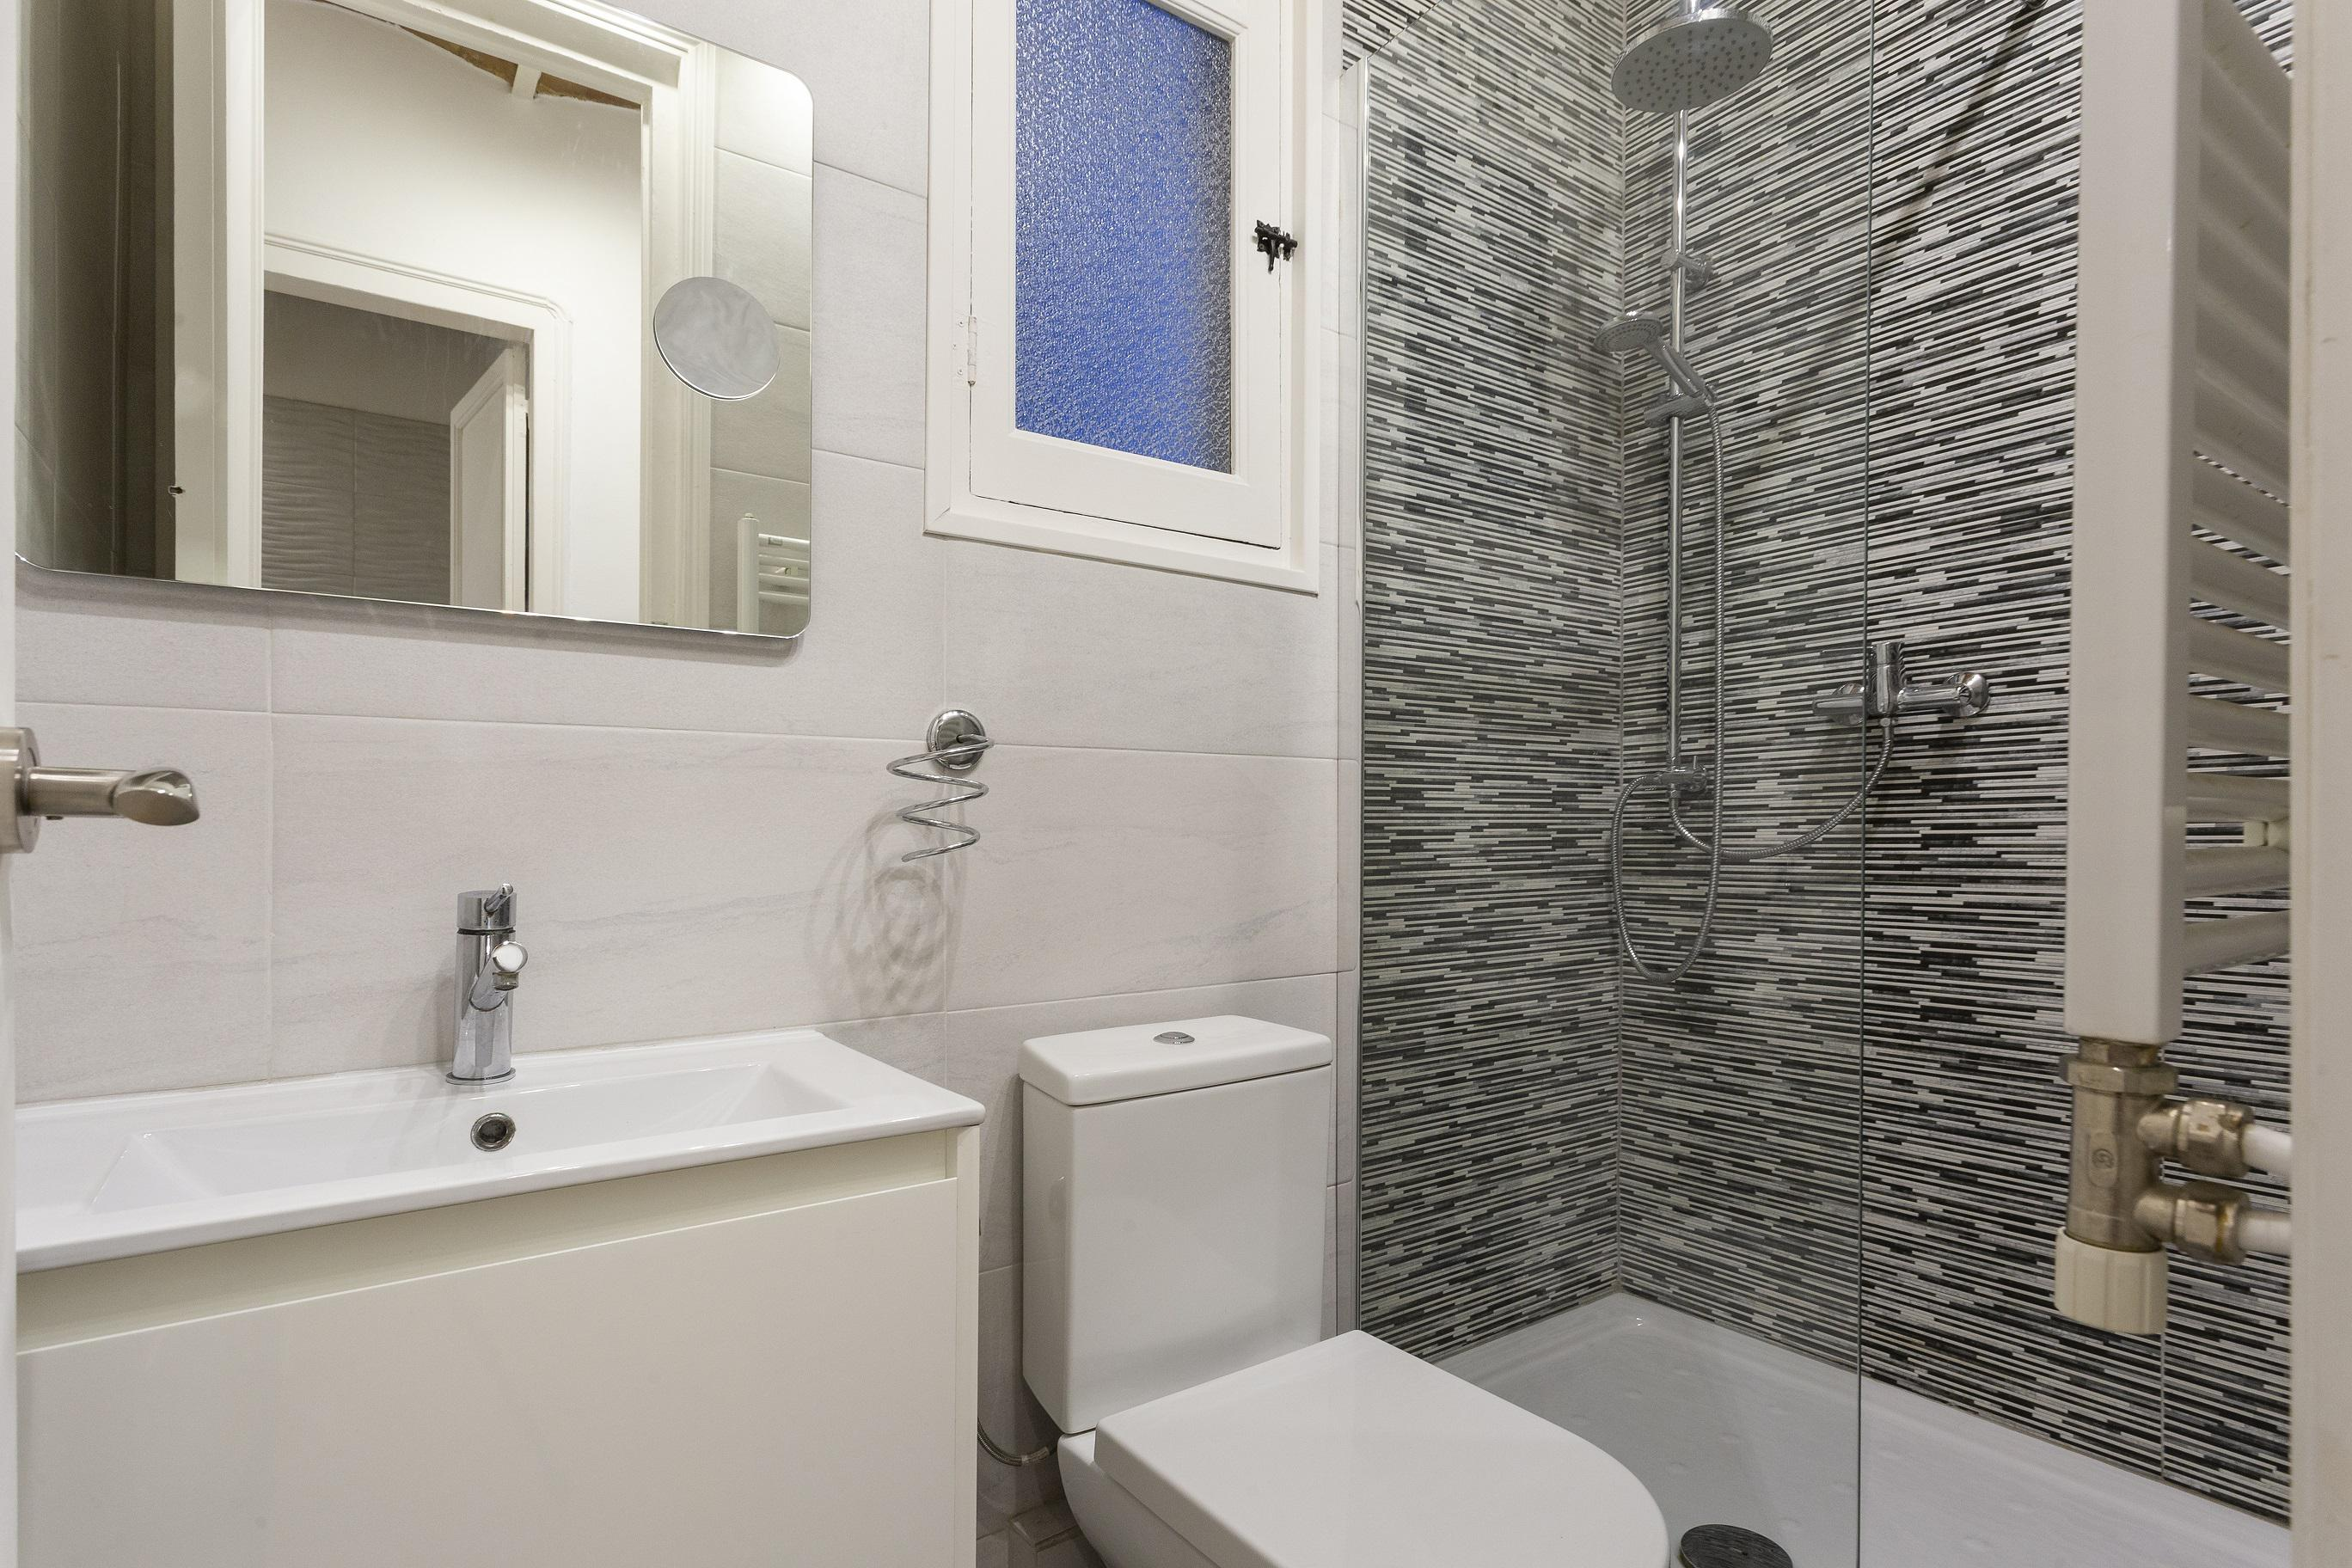 236190 Apartment for sale in Eixample, Old Left Eixample 26